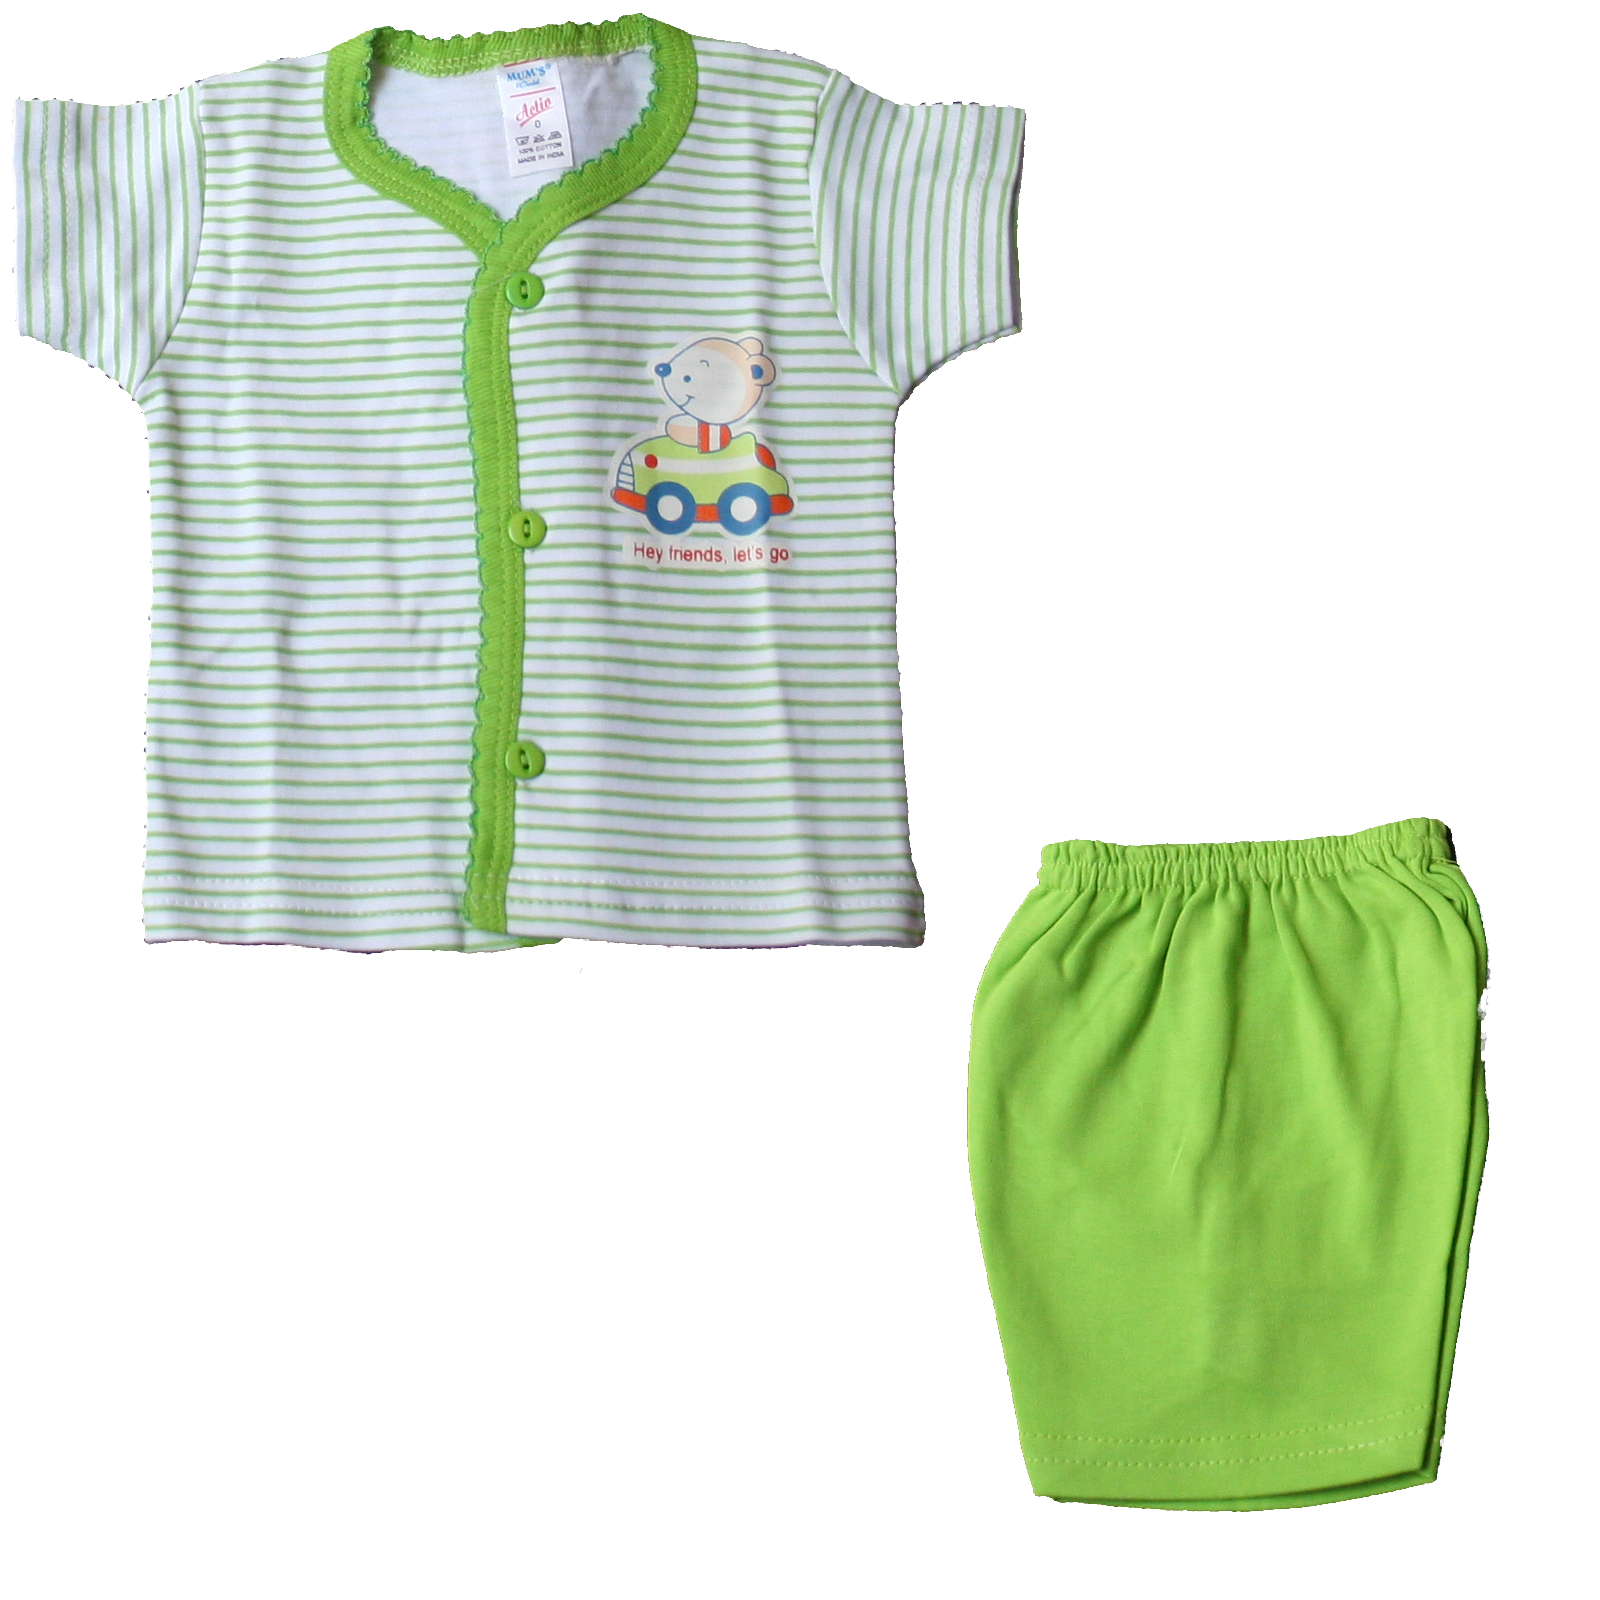 Newborn Assorted Complete Summer Clothing Collection Kit - Adio Clothing PNG